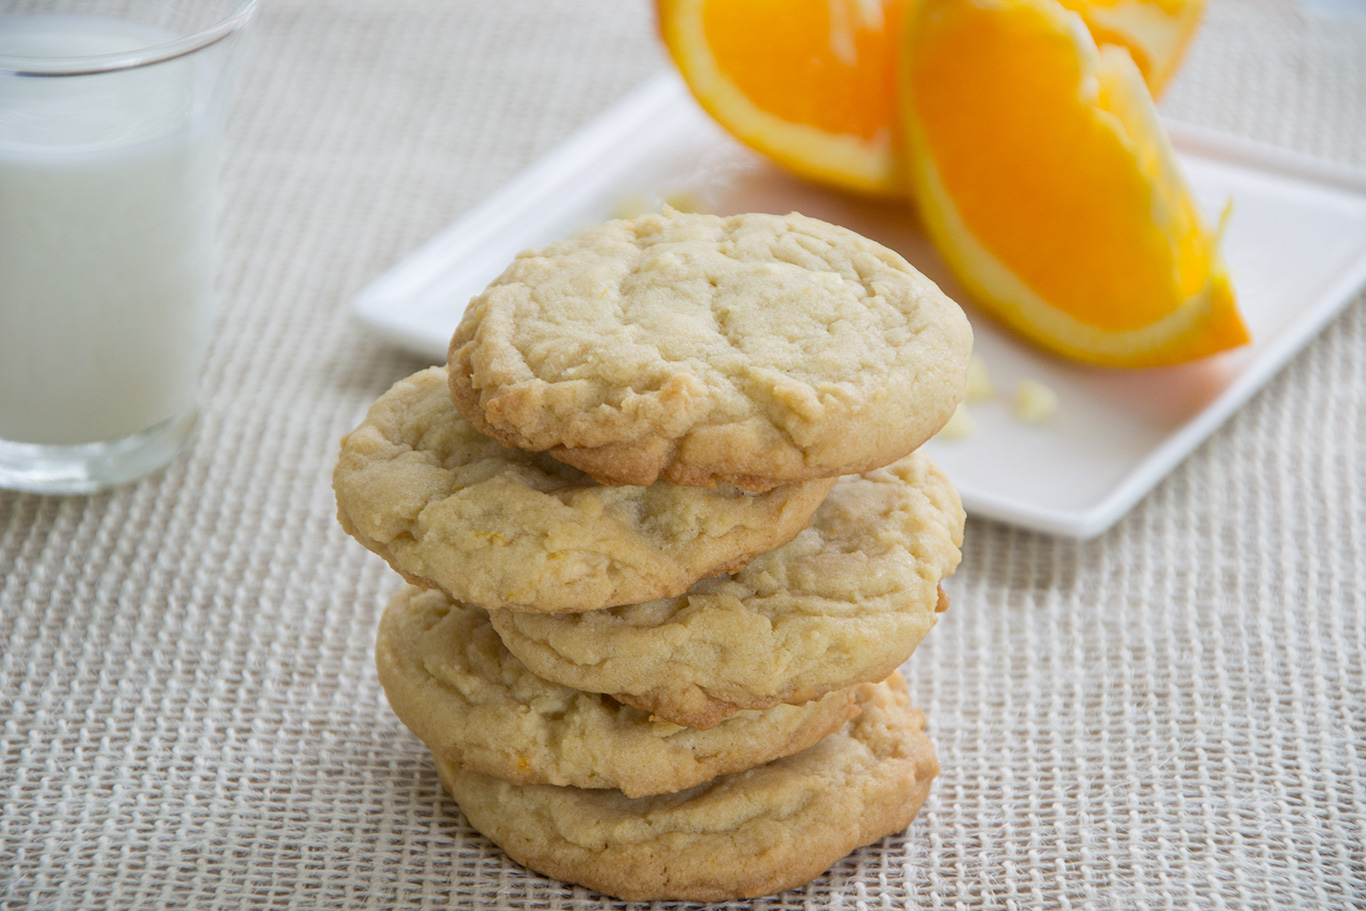 Orange and White Chocolate Cookies - Chateau Elma